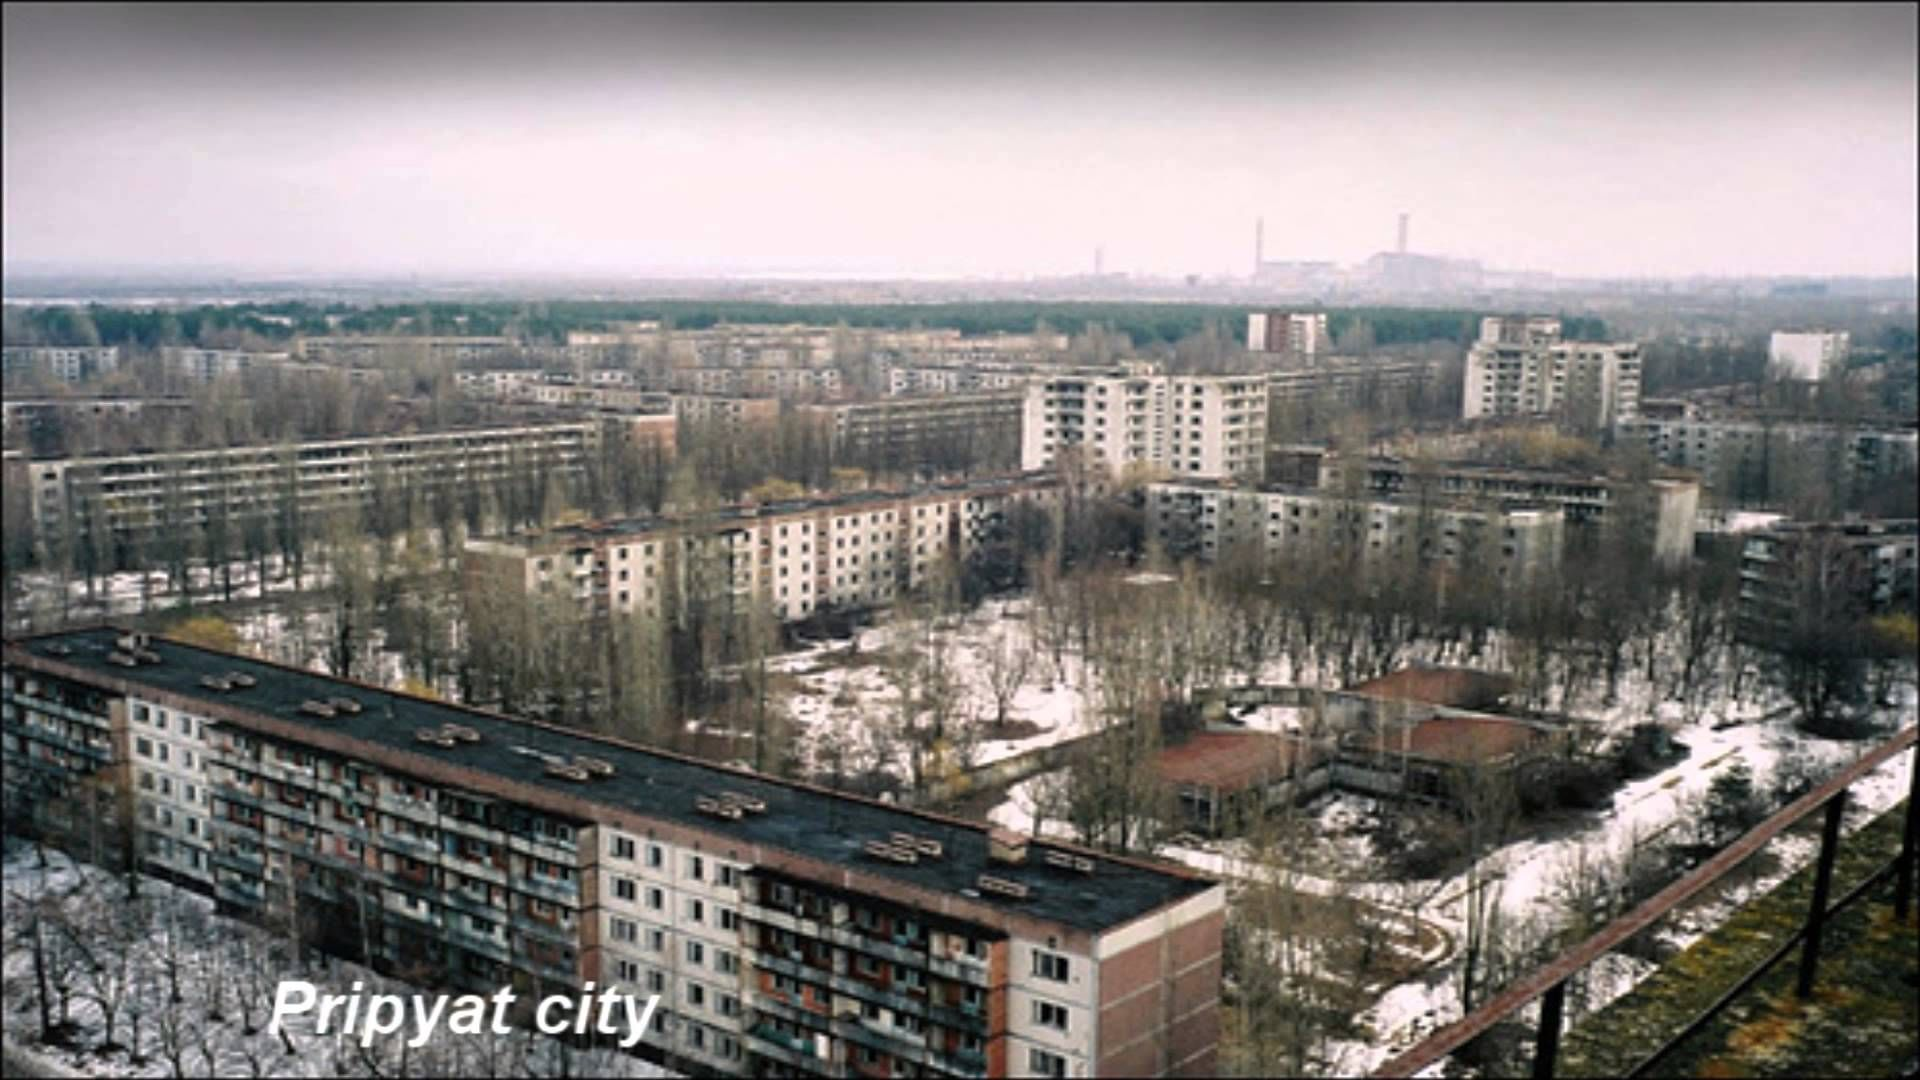 chernobyl disaster The chernobyl disaster was a nuclear accident that occurred on 26 april 1986 at the chernobyl nuclear power plant in the ukrainian soviet socialist republic (then part of the soviet union).